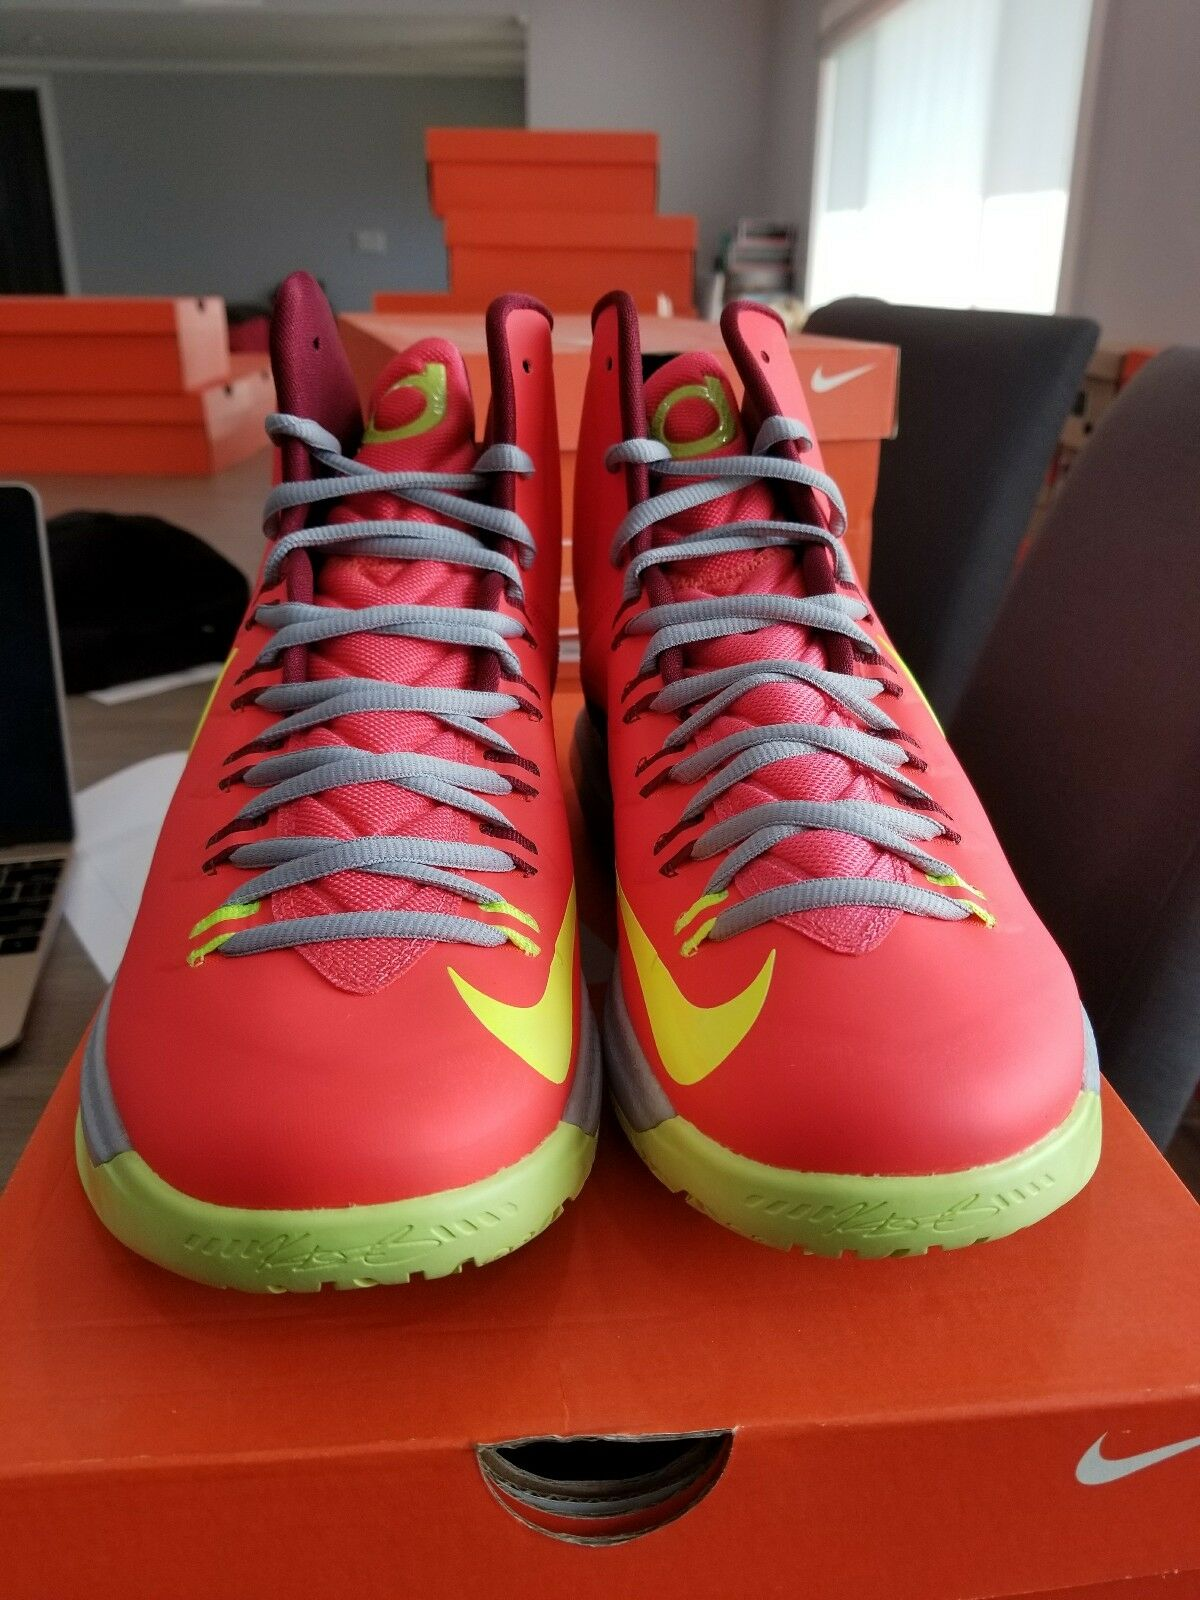 Nike Zoom KEVIN DURANT KD V 5 DMV CRIMSON orange VOLT WOLF GREY 554988-610 sz 10